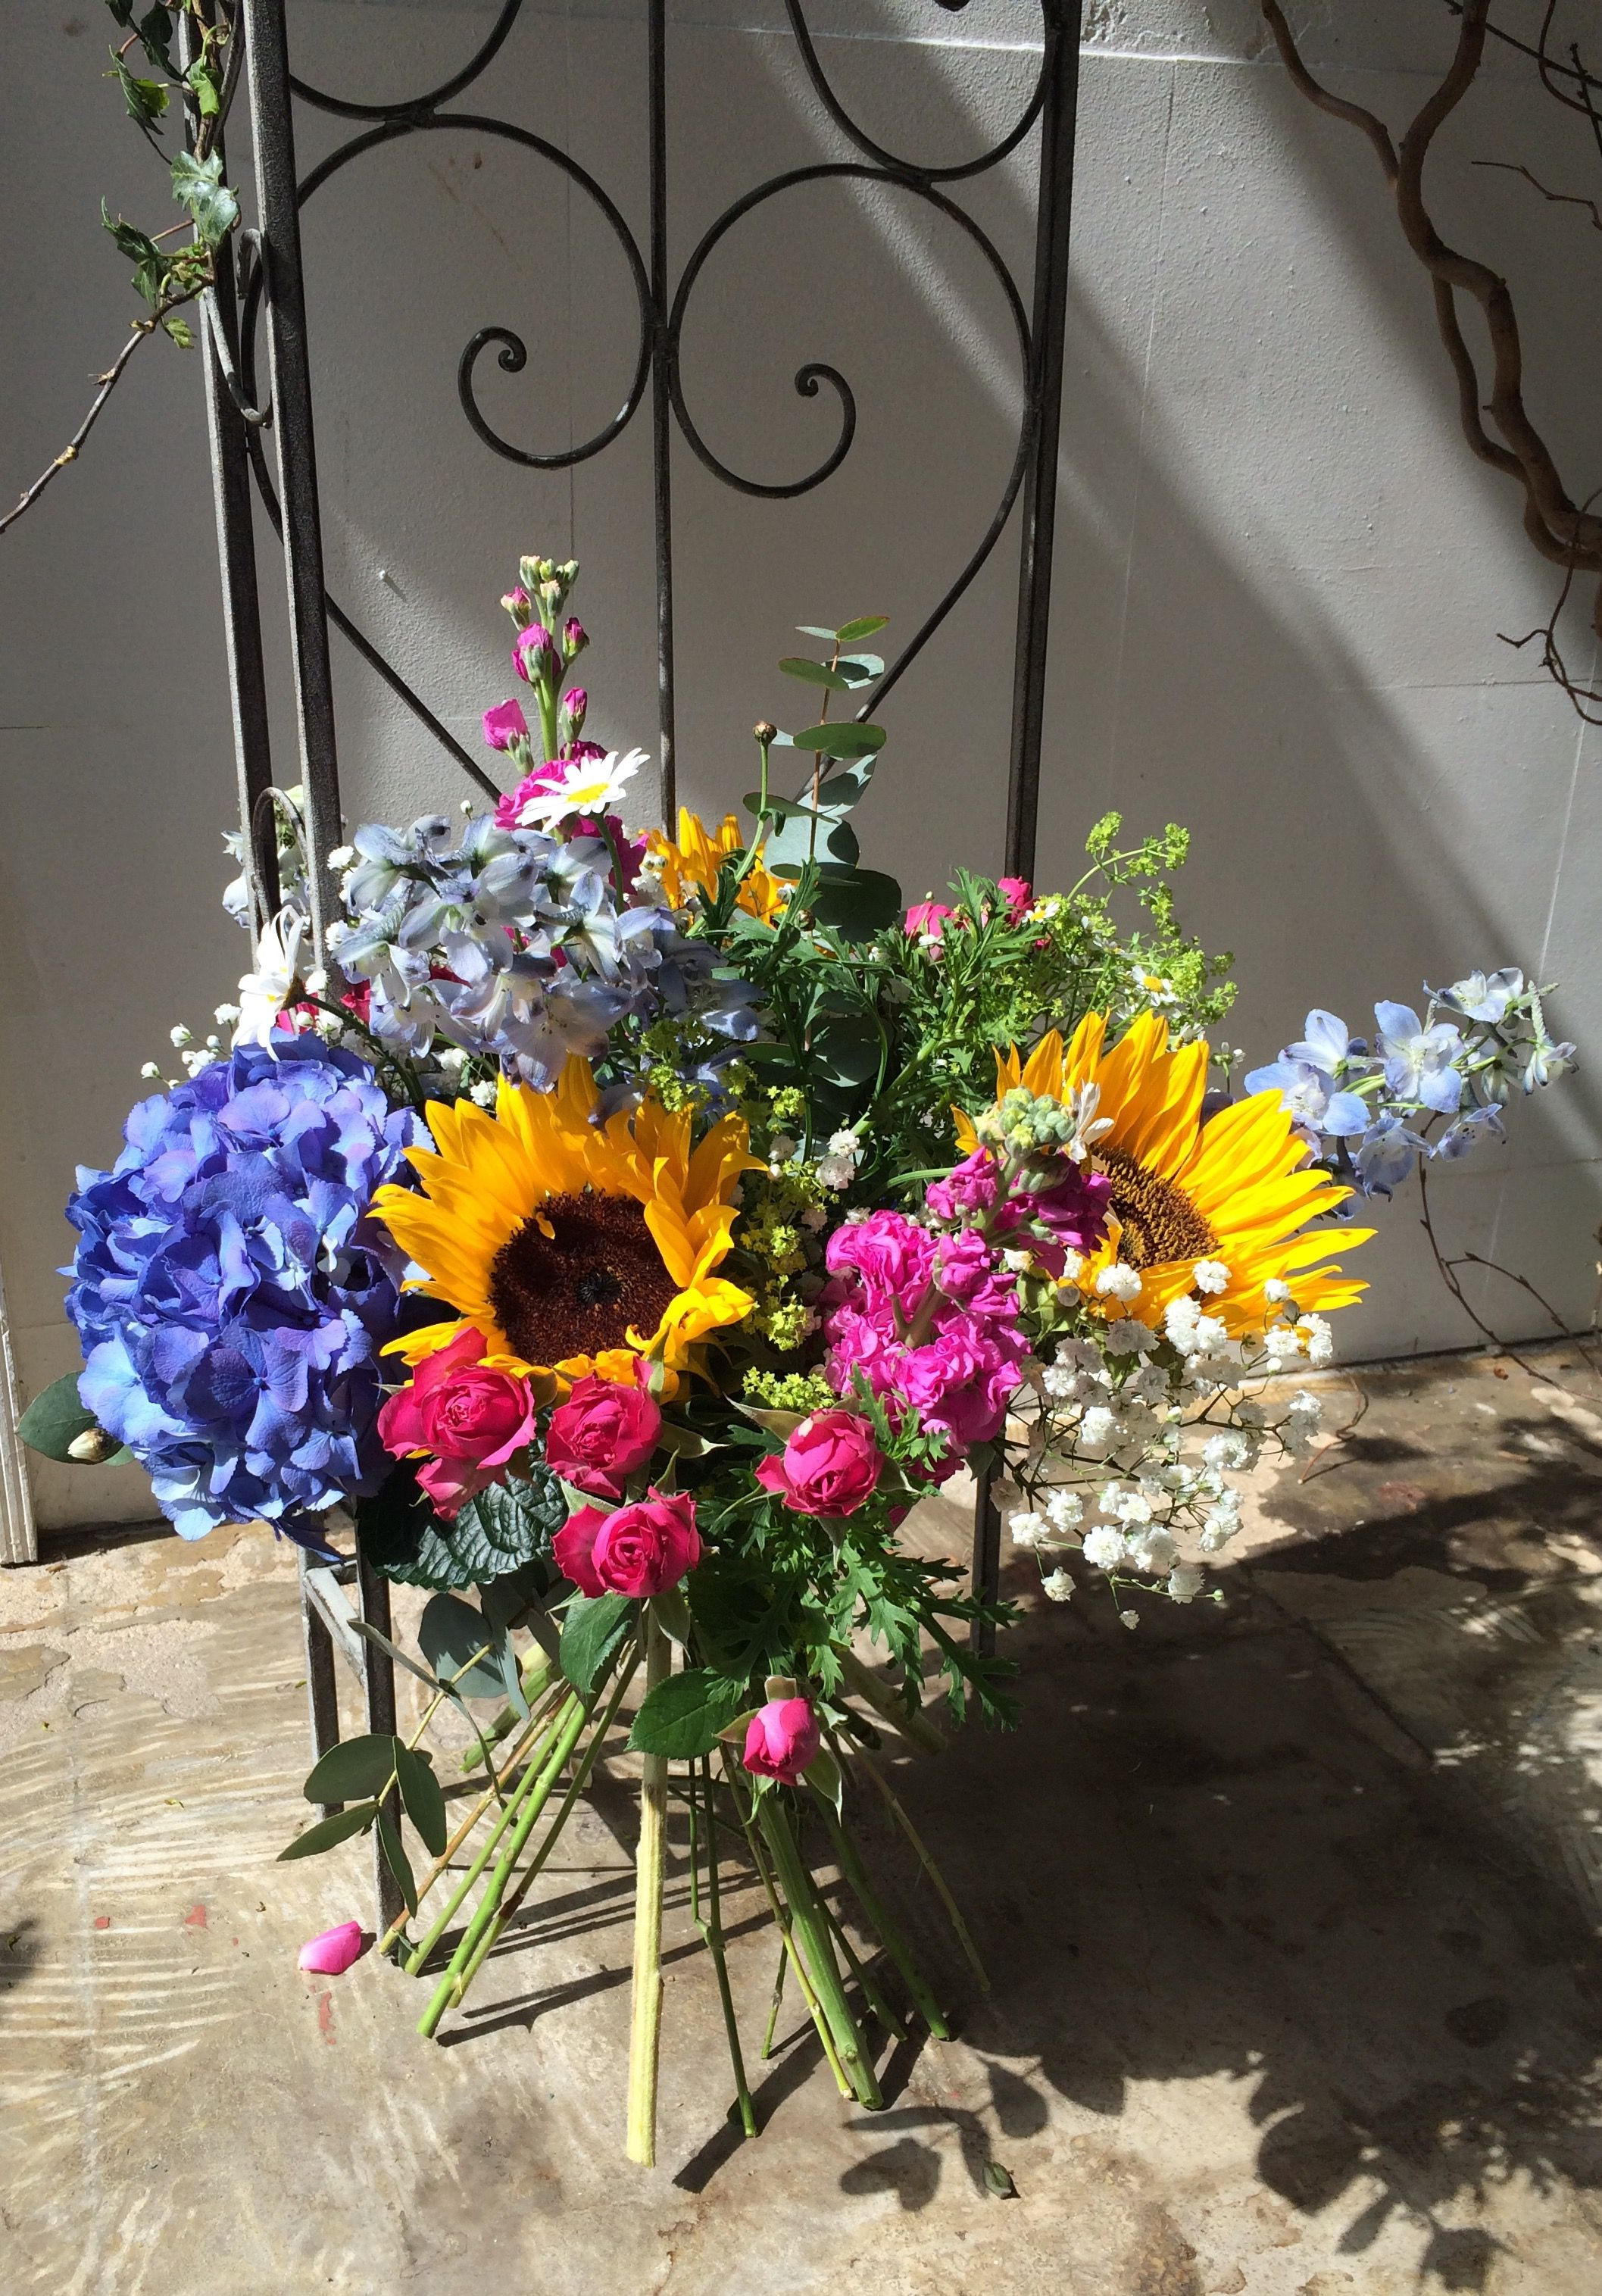 Hindu wedding decoration ideas  Summery handtied bouquet bright and colourful with sunflower